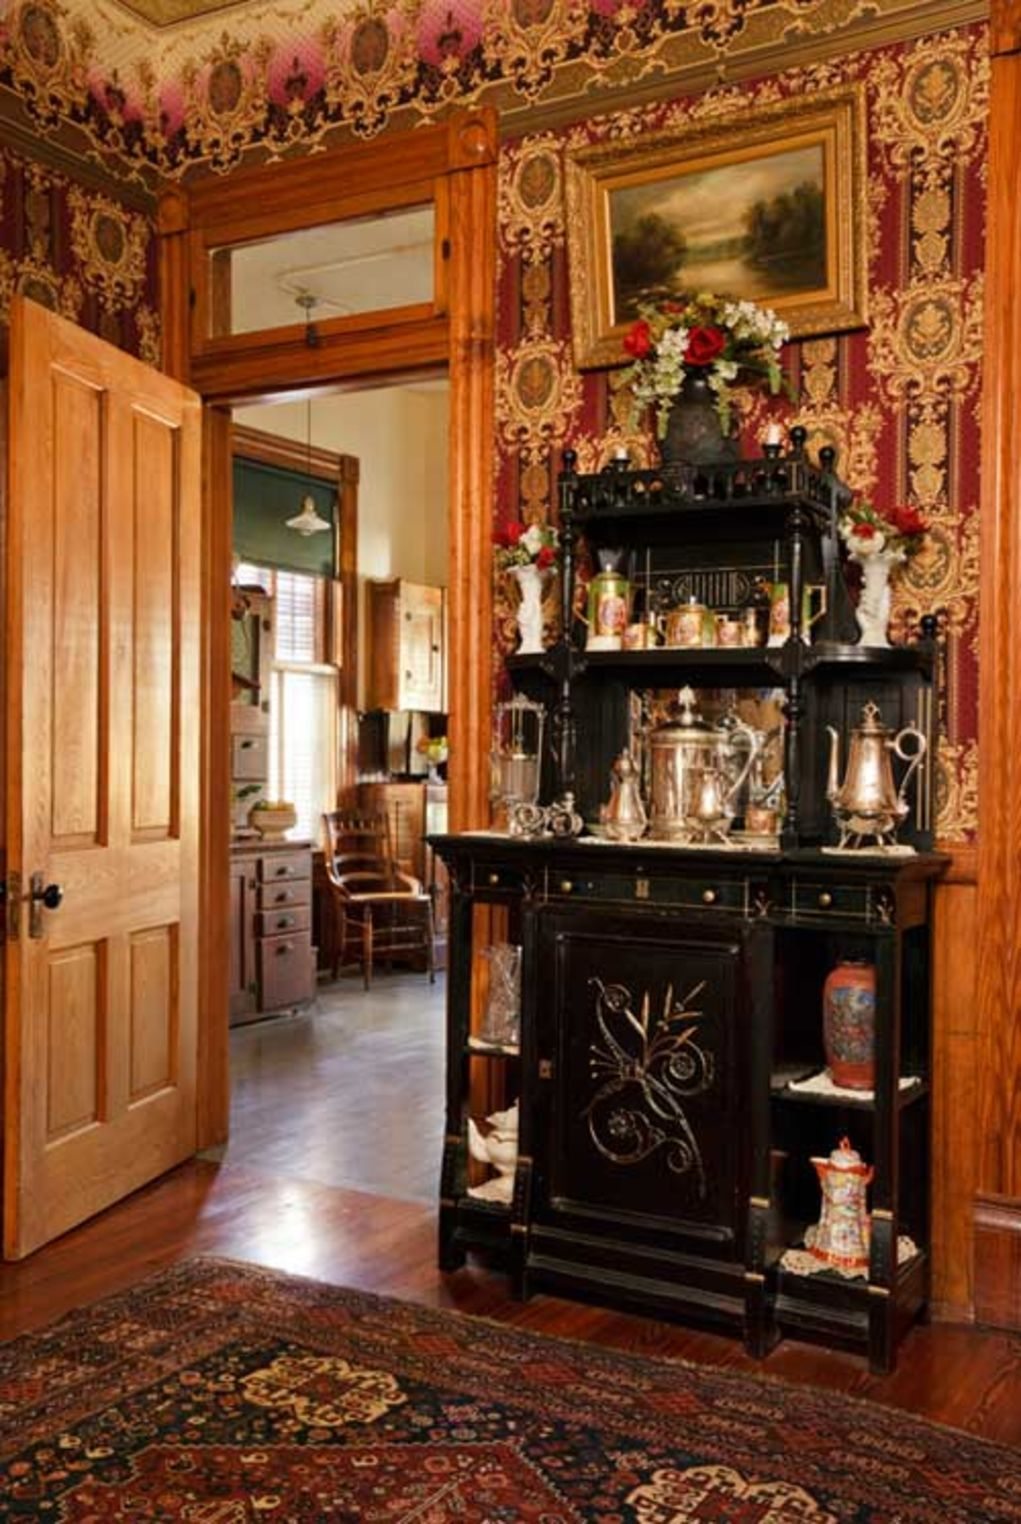 An Authentic Victorian Kitchen Design